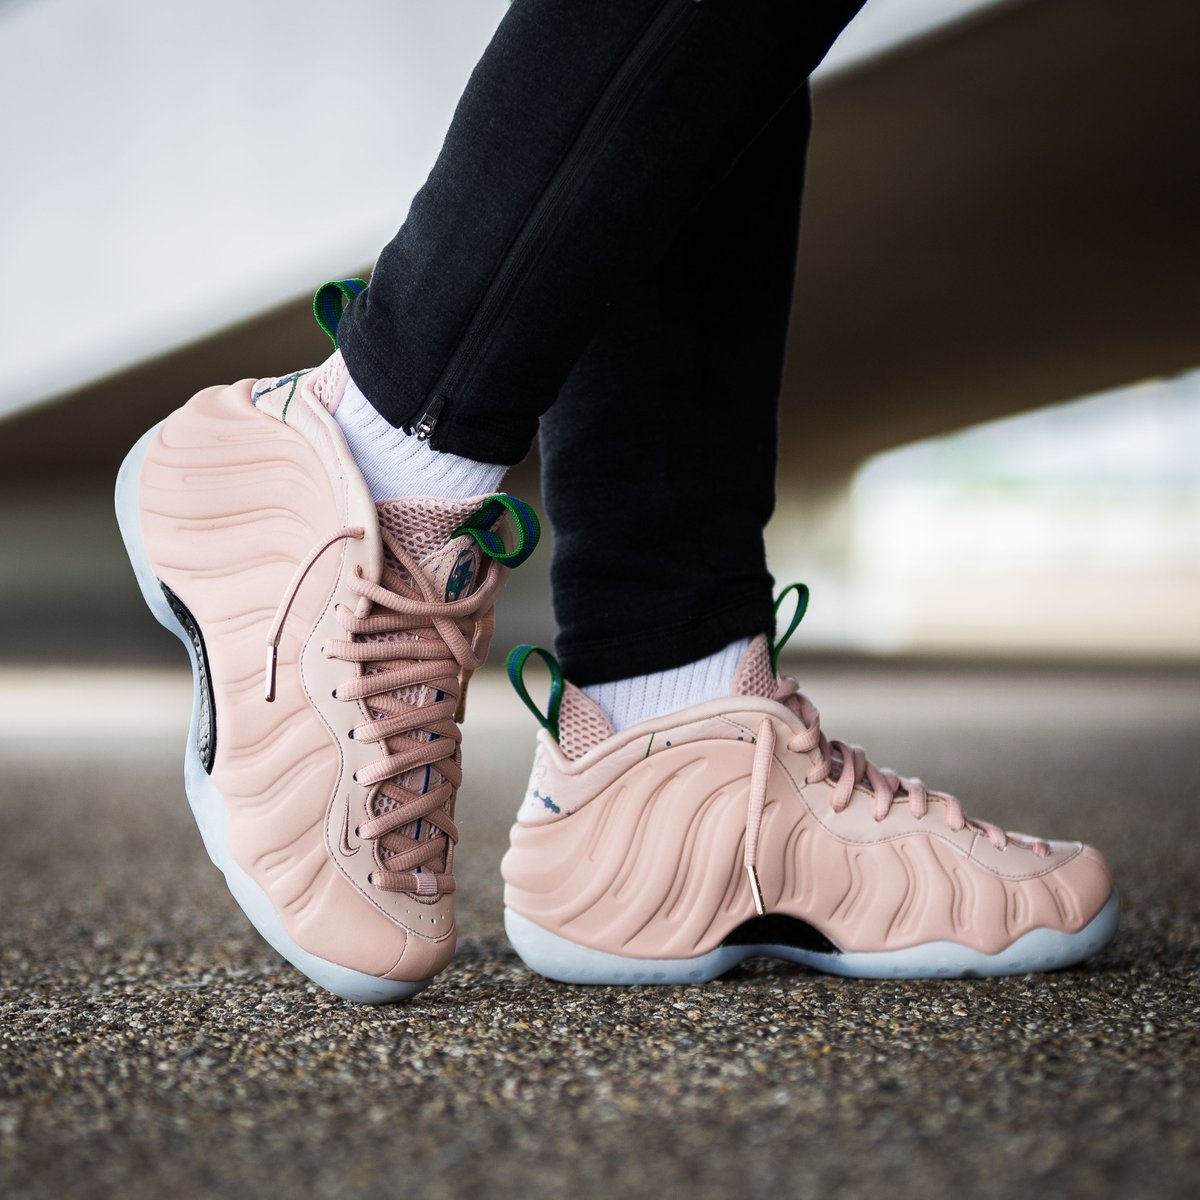 Nike Air Foamposite One UK 7 US 8 EUR 41 Cm 26 One Rust ...